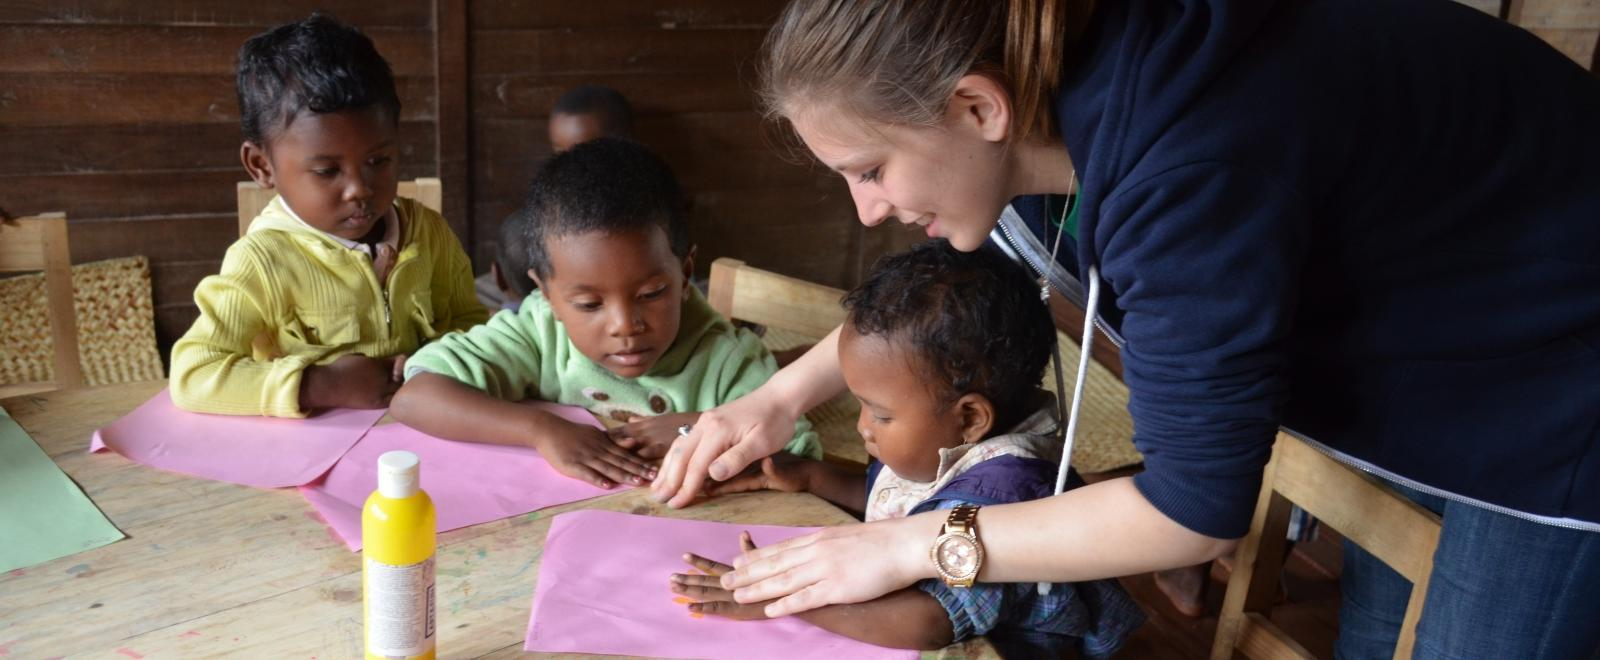 Children get help with an arts and crafts activity from a volunteer doing childcare work in Africa.